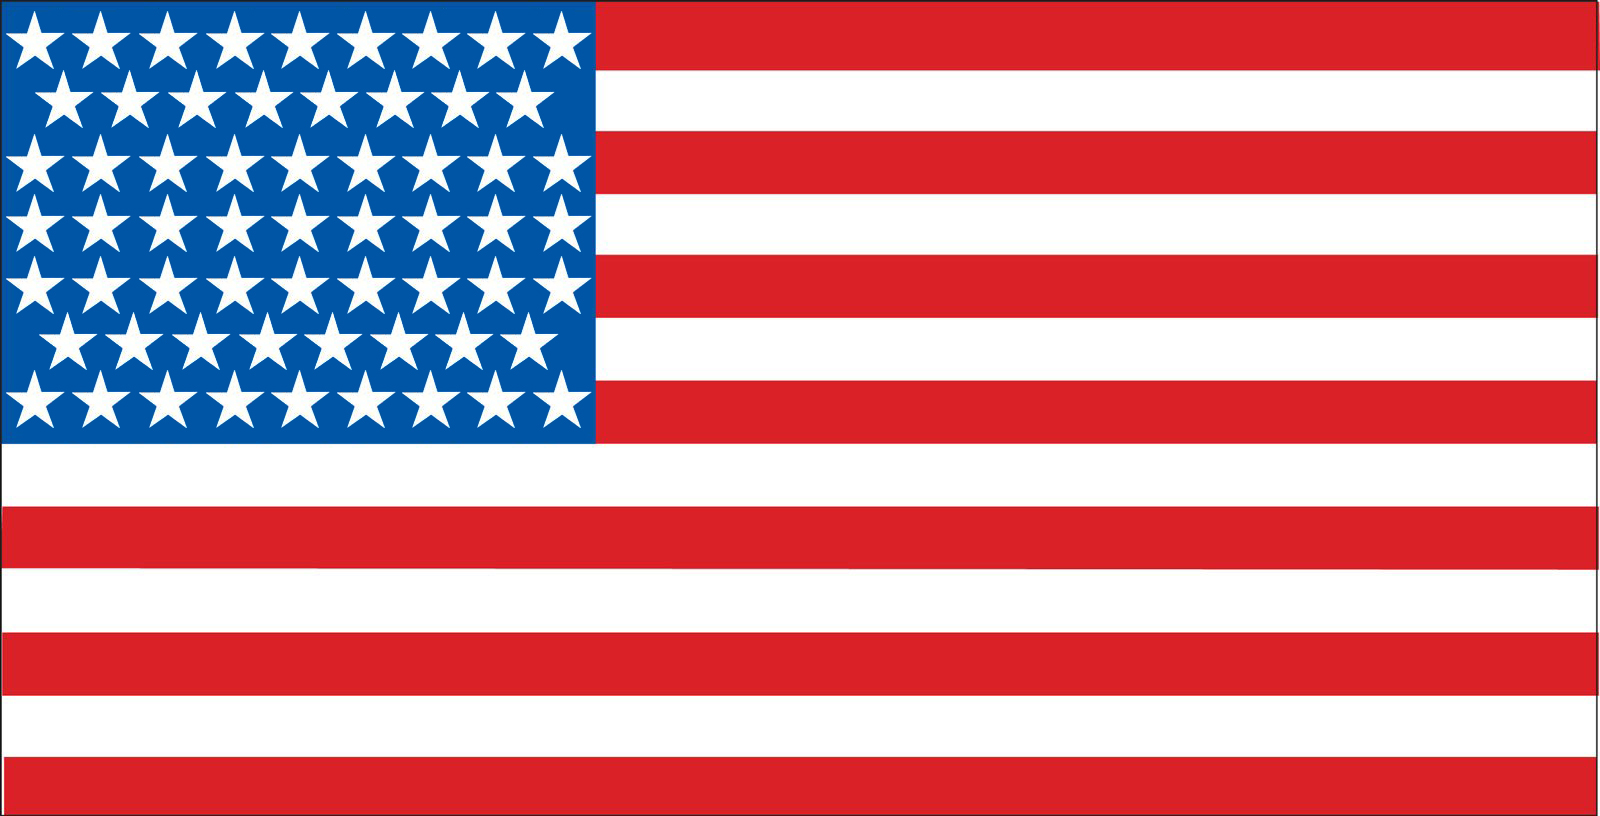 American flag hq wallpapers full hd pictures - American flag hd ...